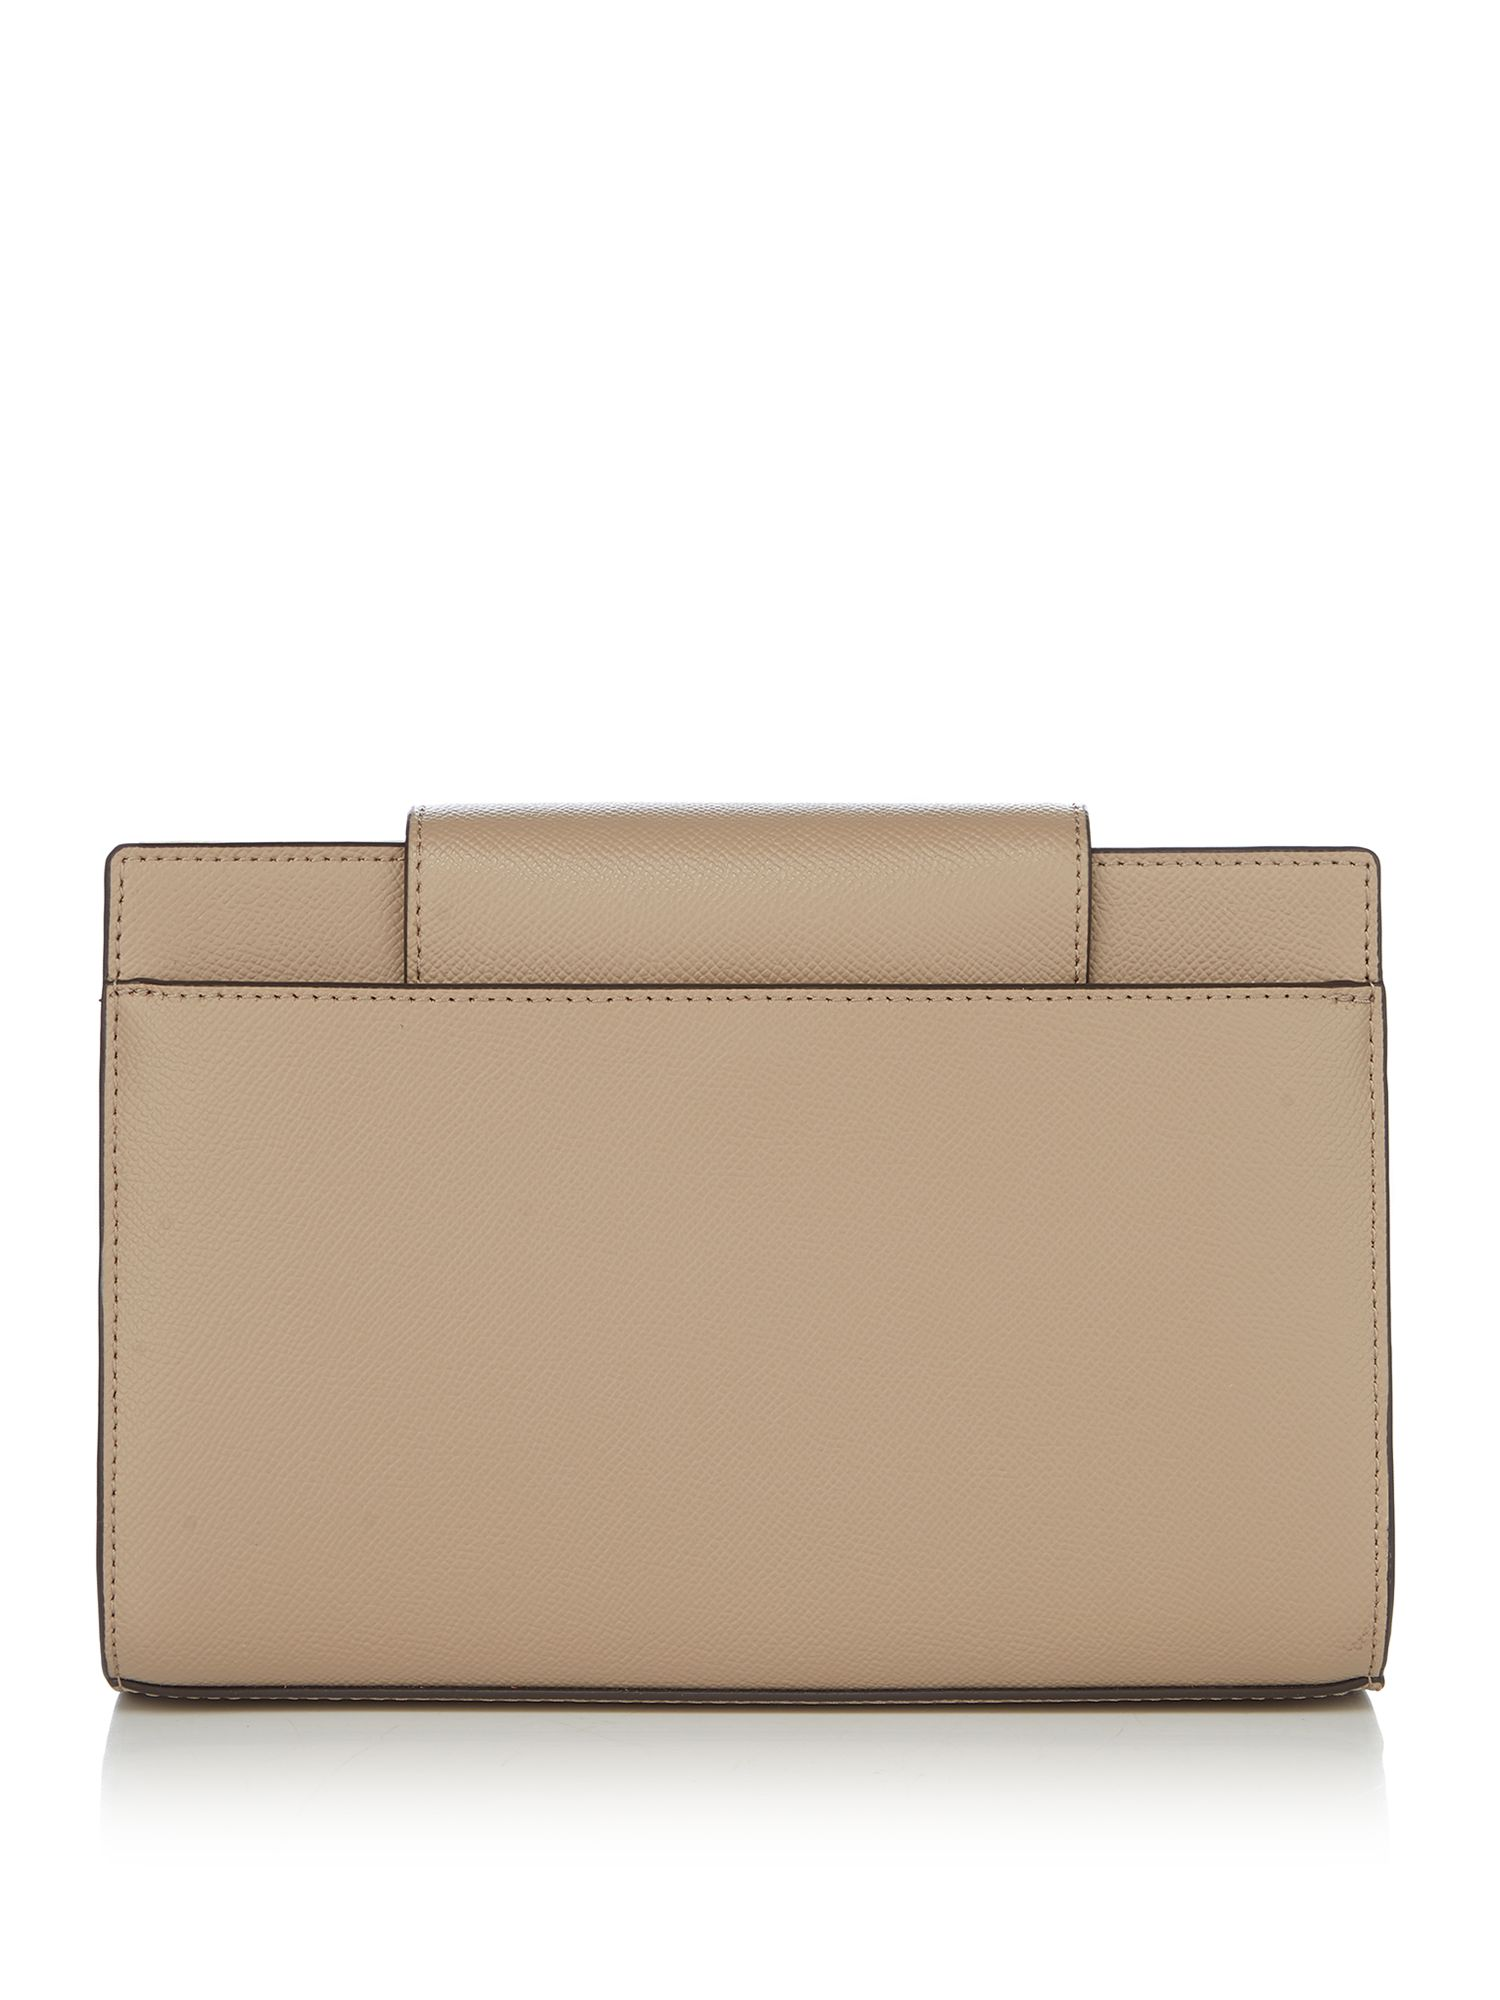 clutch bags clutches house of fraser rh houseoffraser co uk